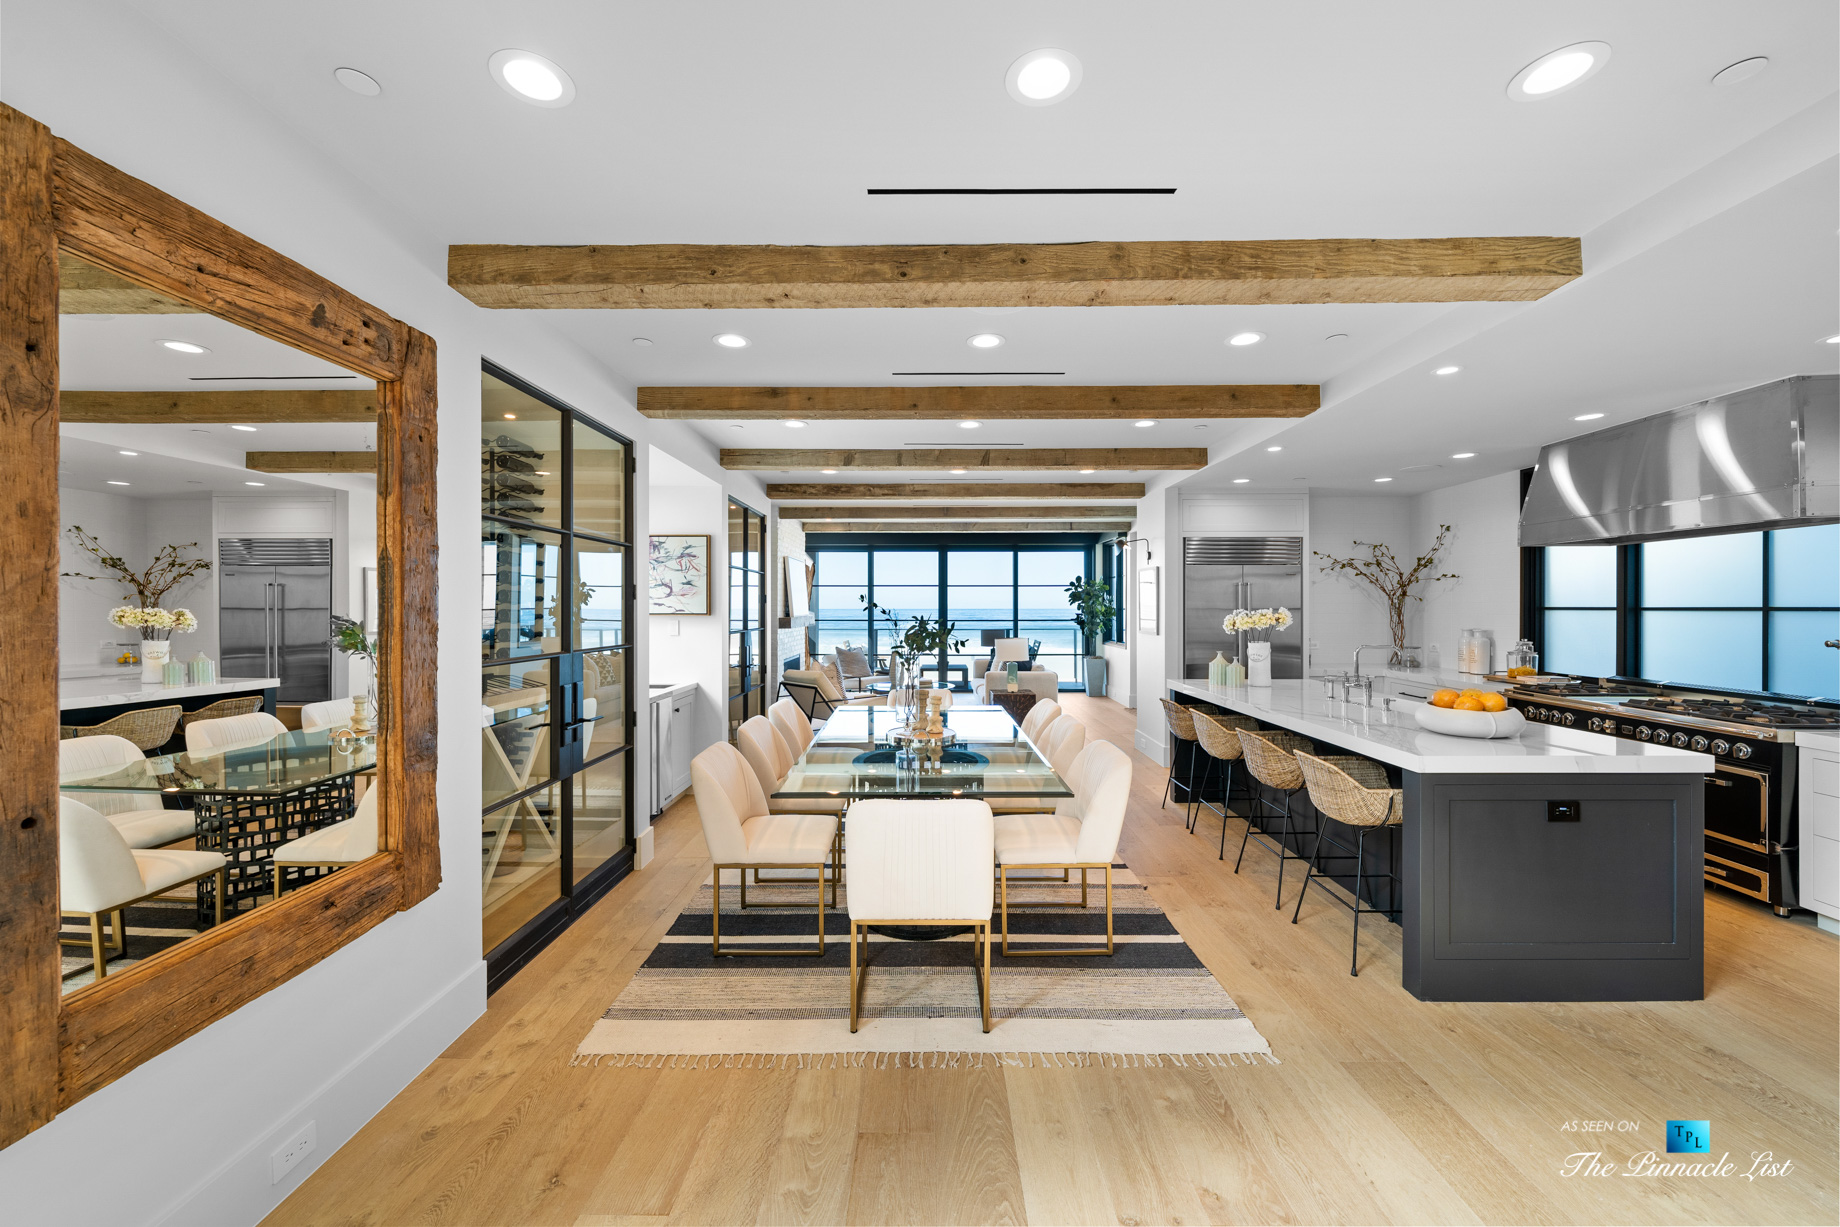 508 The Strand, Manhattan Beach, CA, USA – Main Level Living Space – Luxury Real Estate – Oceanfront Home